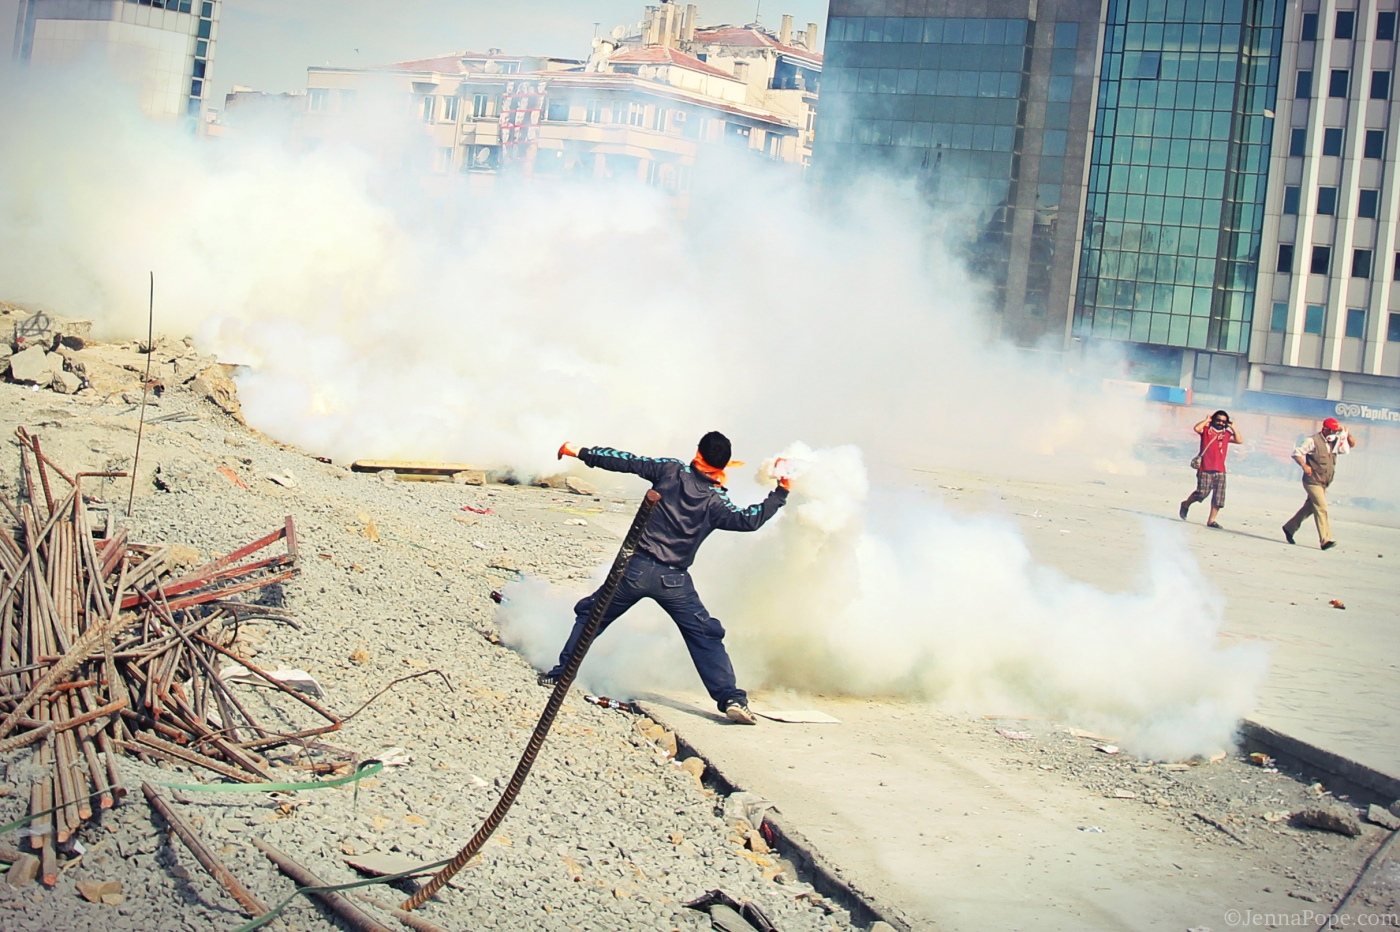 A protestor throws a tear gas canister back towards police.